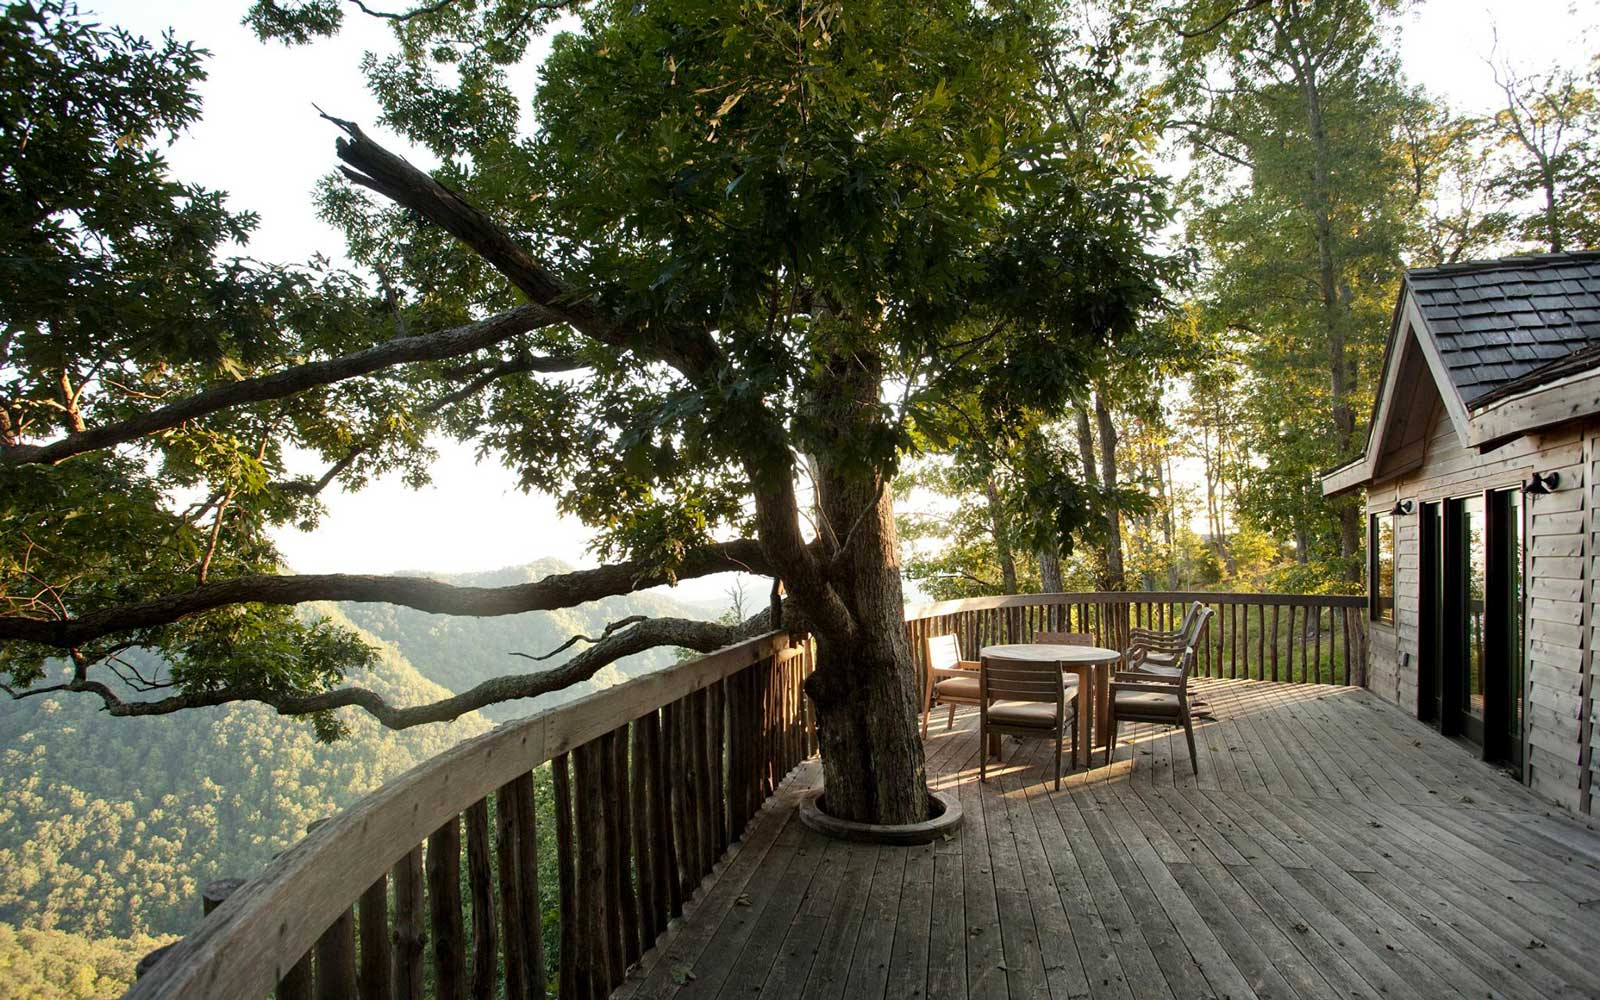 The Tree Houses at Primland, Virginia